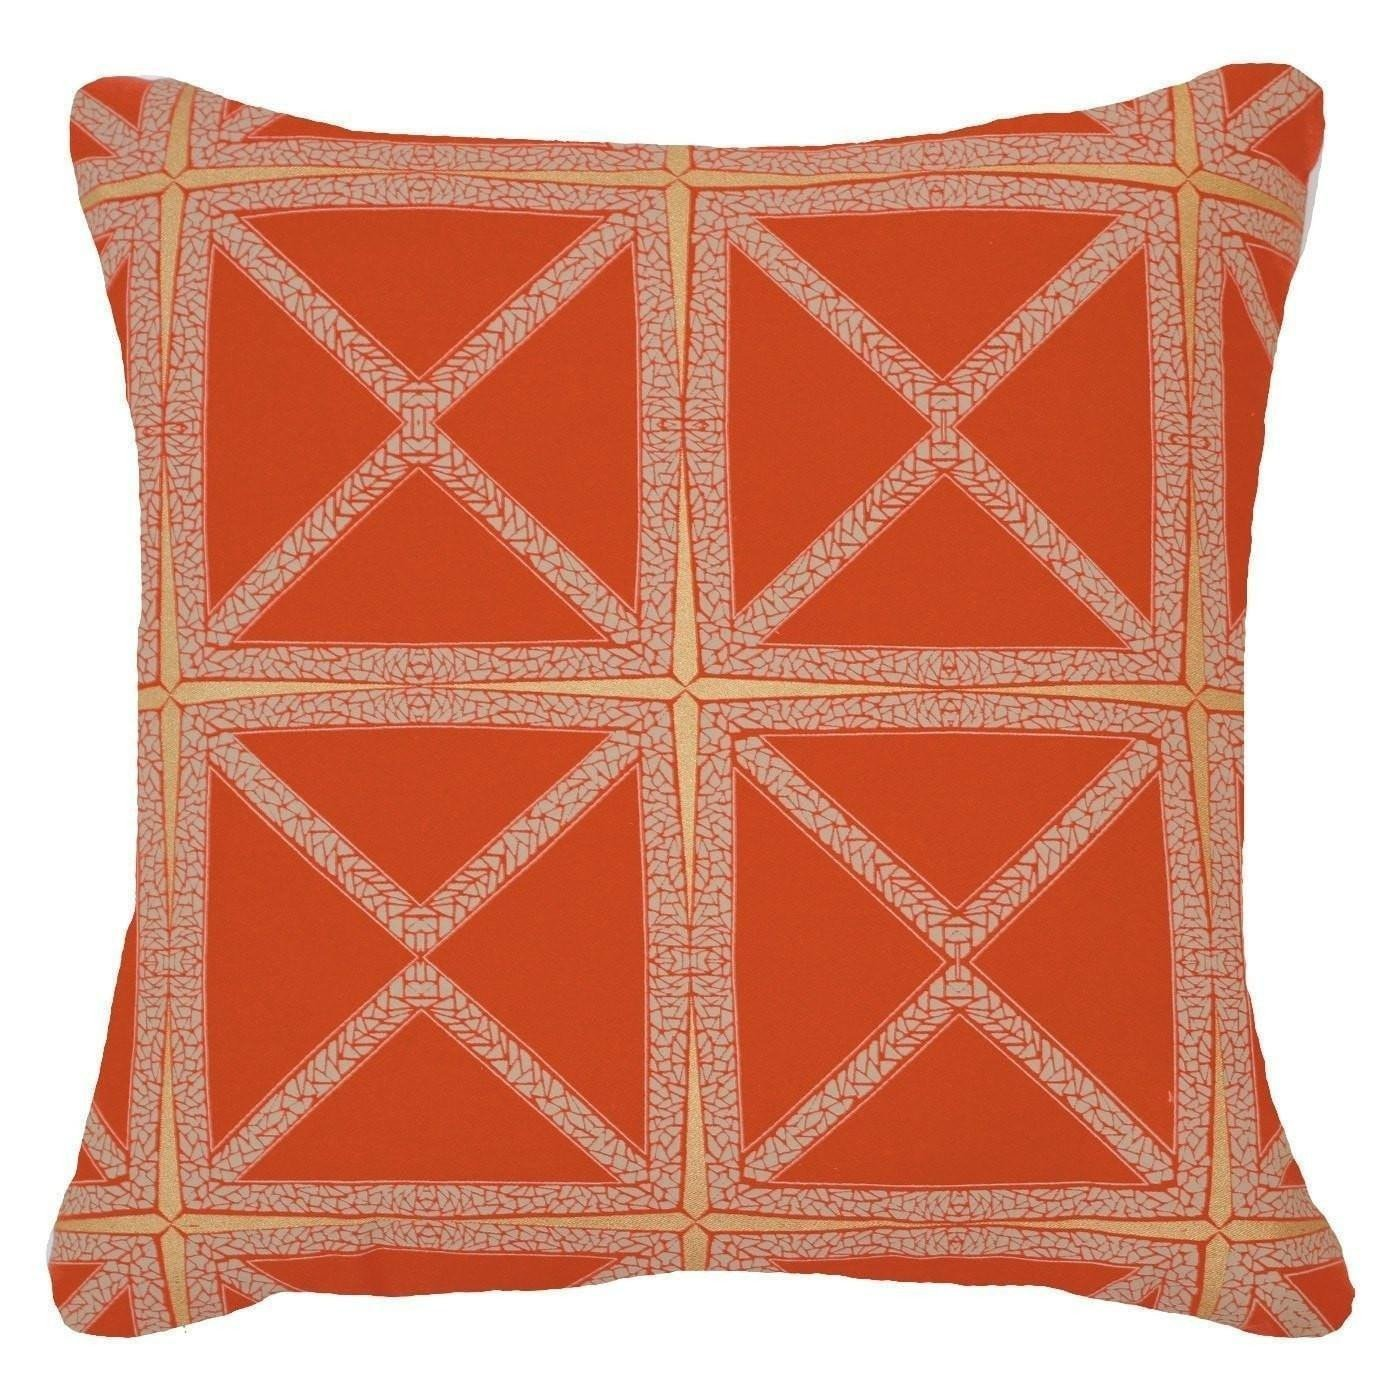 Bandhini Homewear Design Lounge Cushion Orange / Aztec Fire / 22 x 22 Mosaic Rust Lounge Cushion 55x55cm